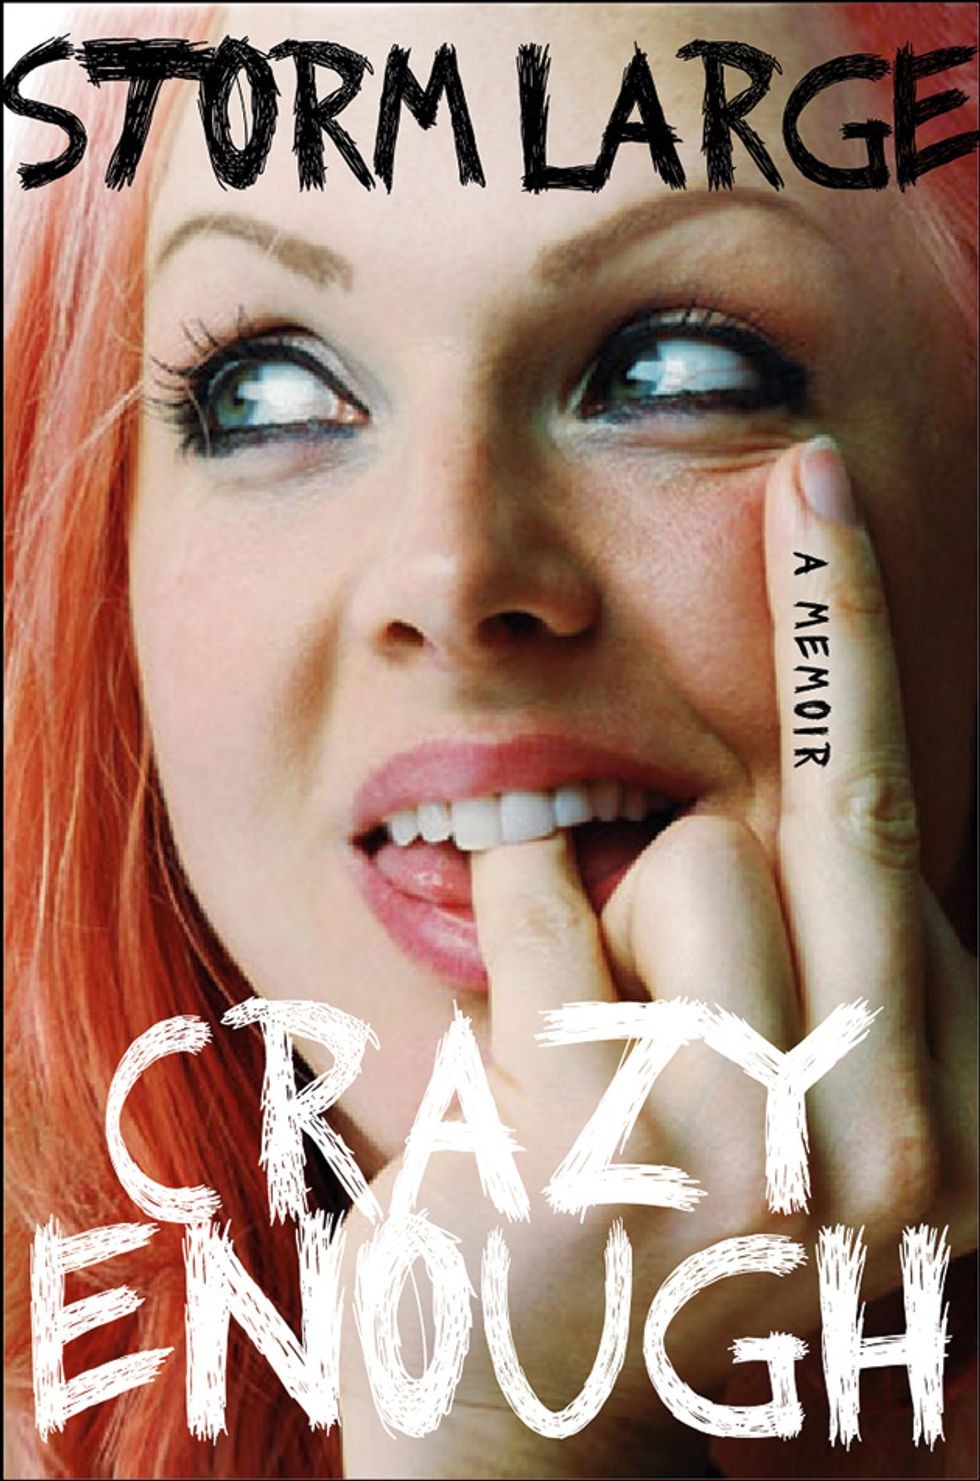 Singer Storm Large Makes Going to the Dark Place Fun in Her Memoir Crazy Enough